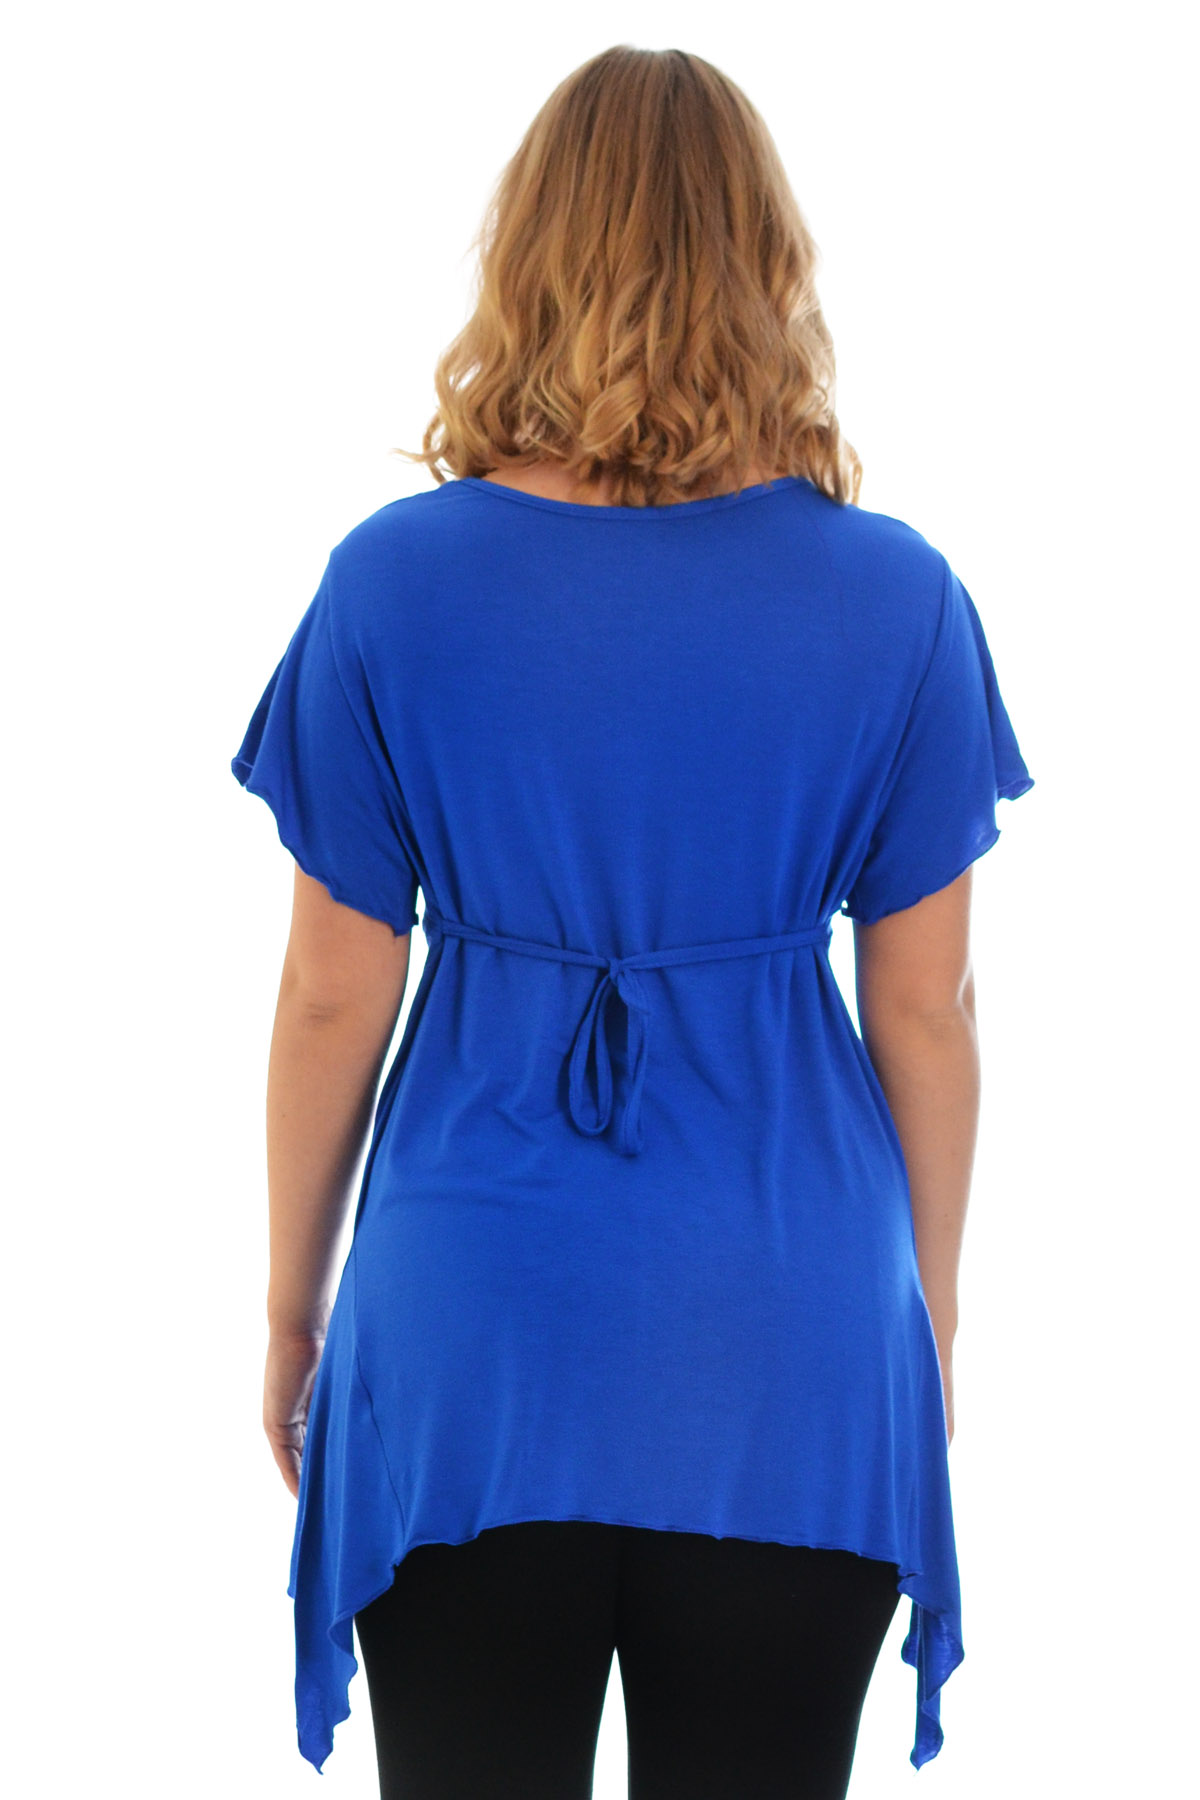 New-Womens-Plus-Size-Top-Ladies-T-Shirt-Buckle-Stud-A-Line-Asymmetric-Nouvelle thumbnail 26